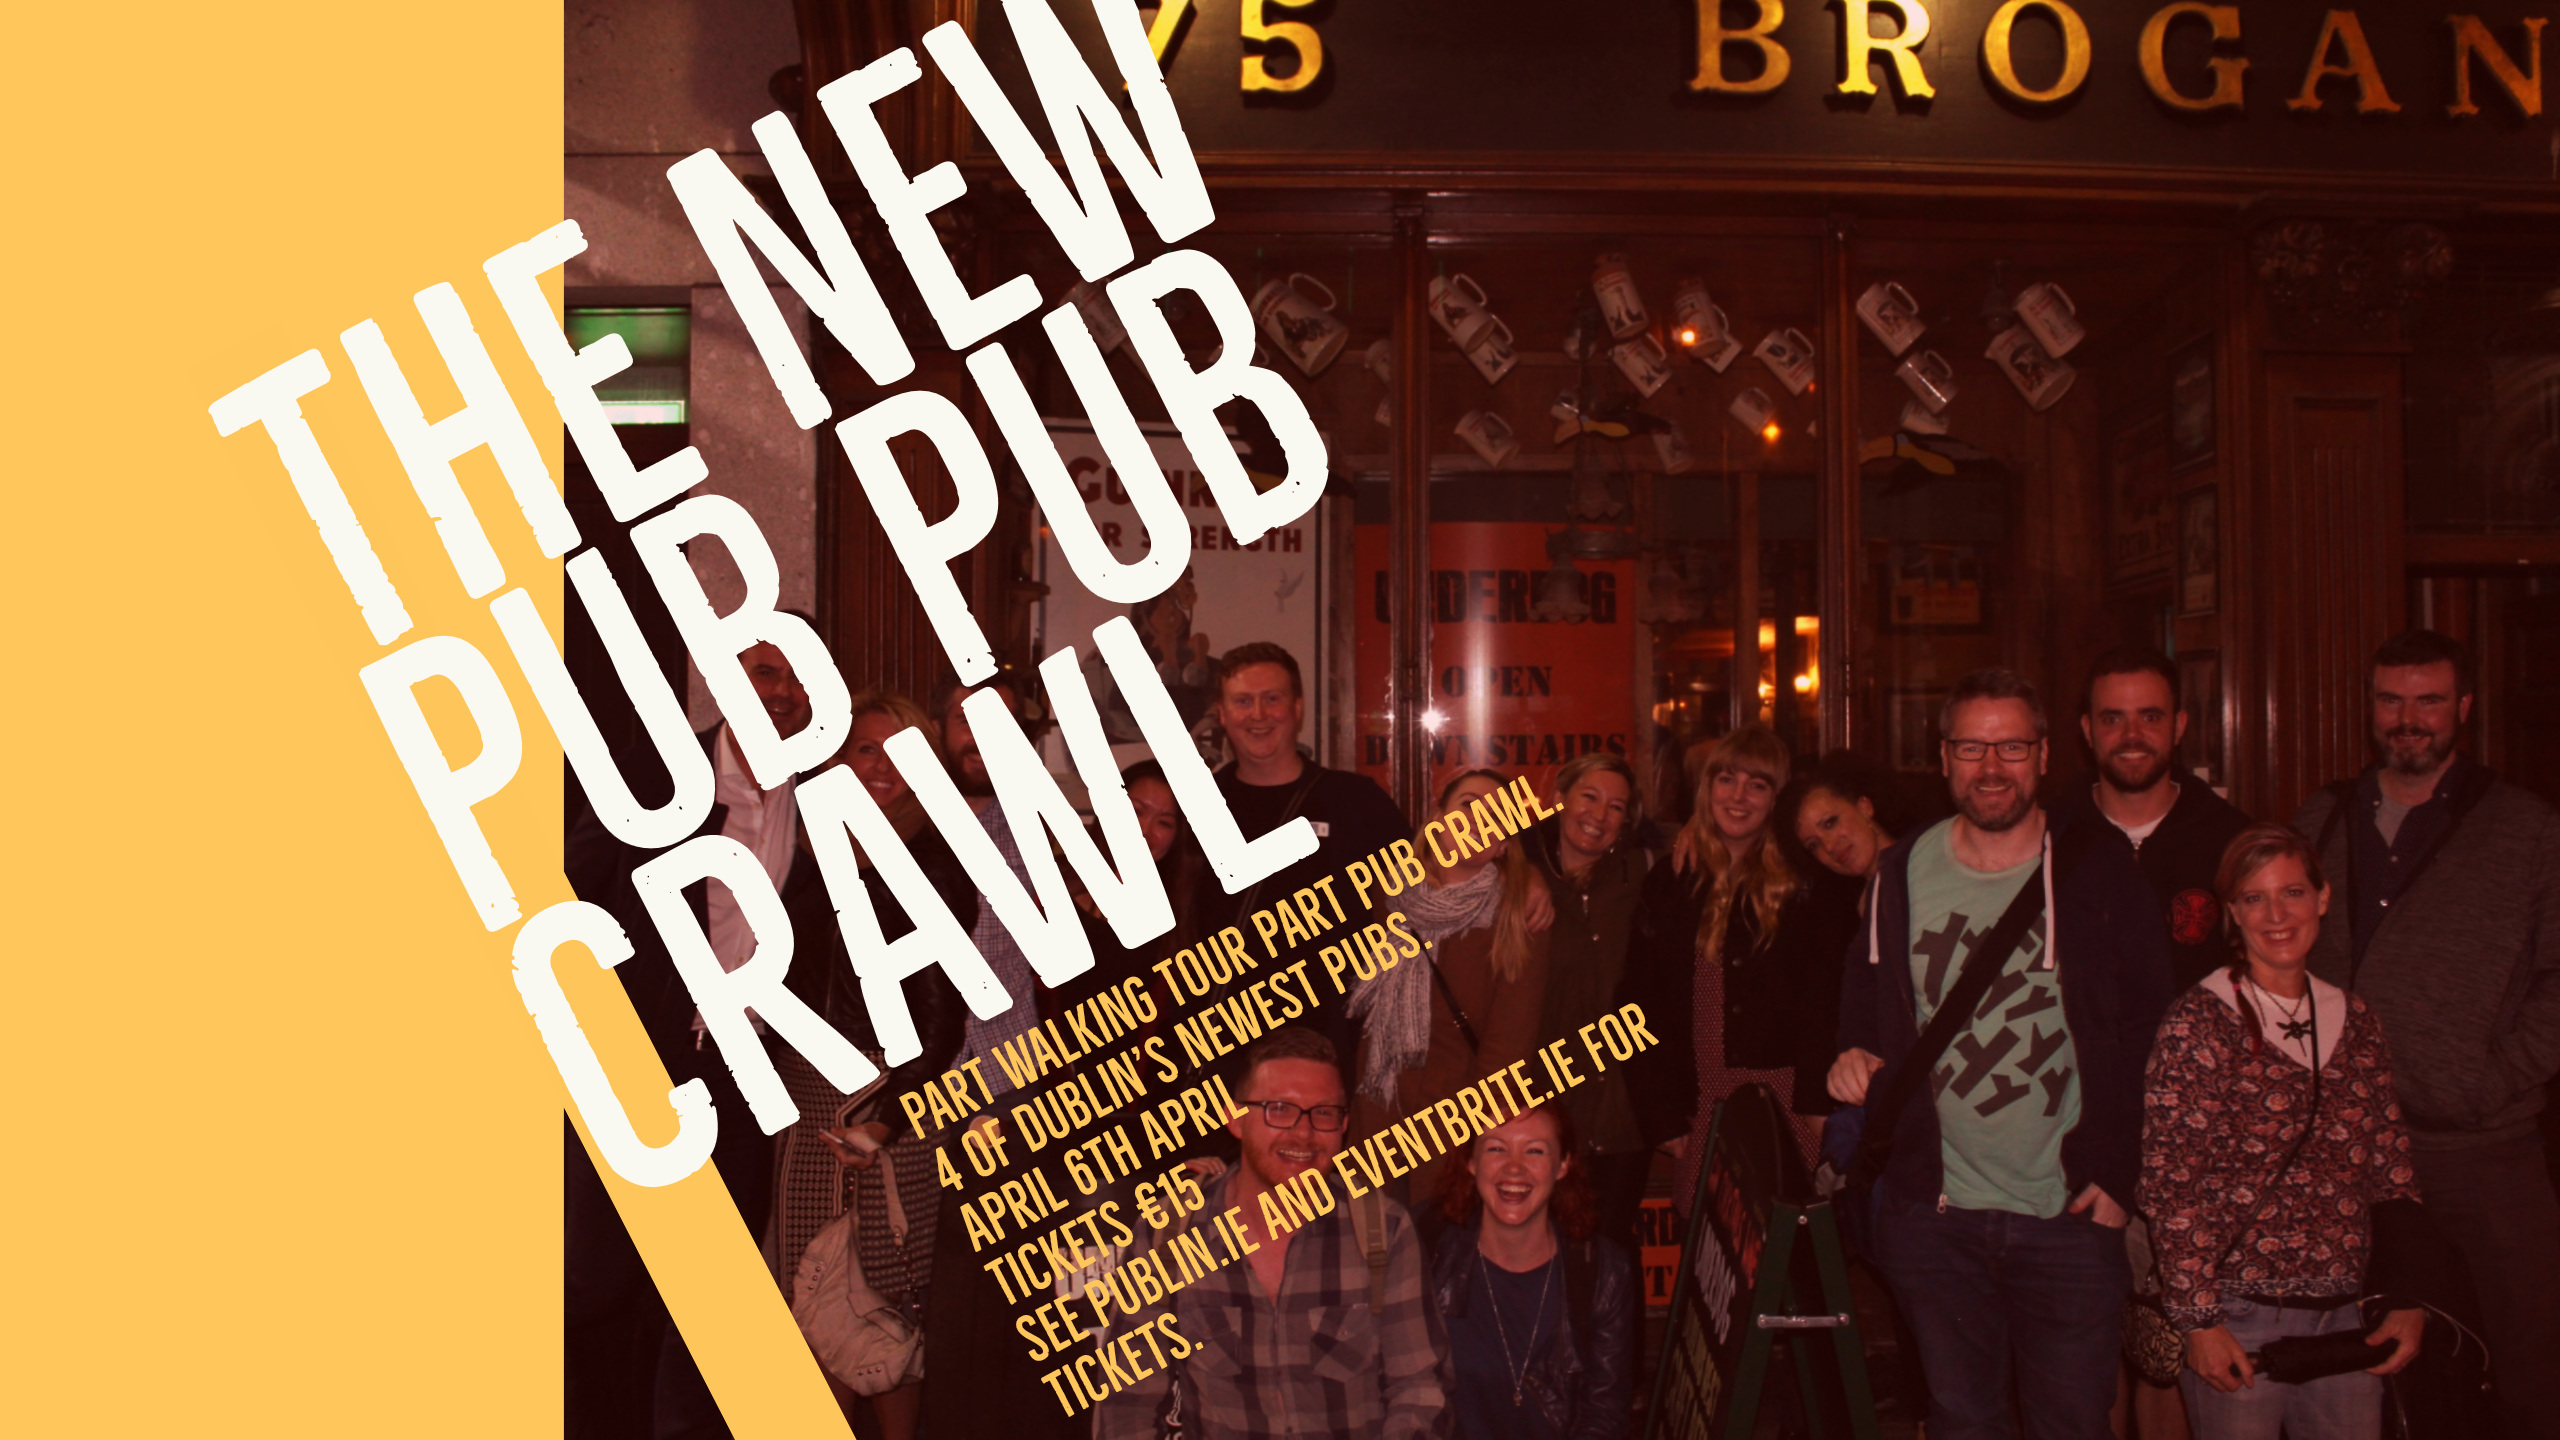 <h3>The New Pub Pub Crawl- Friday 6th April</h3>